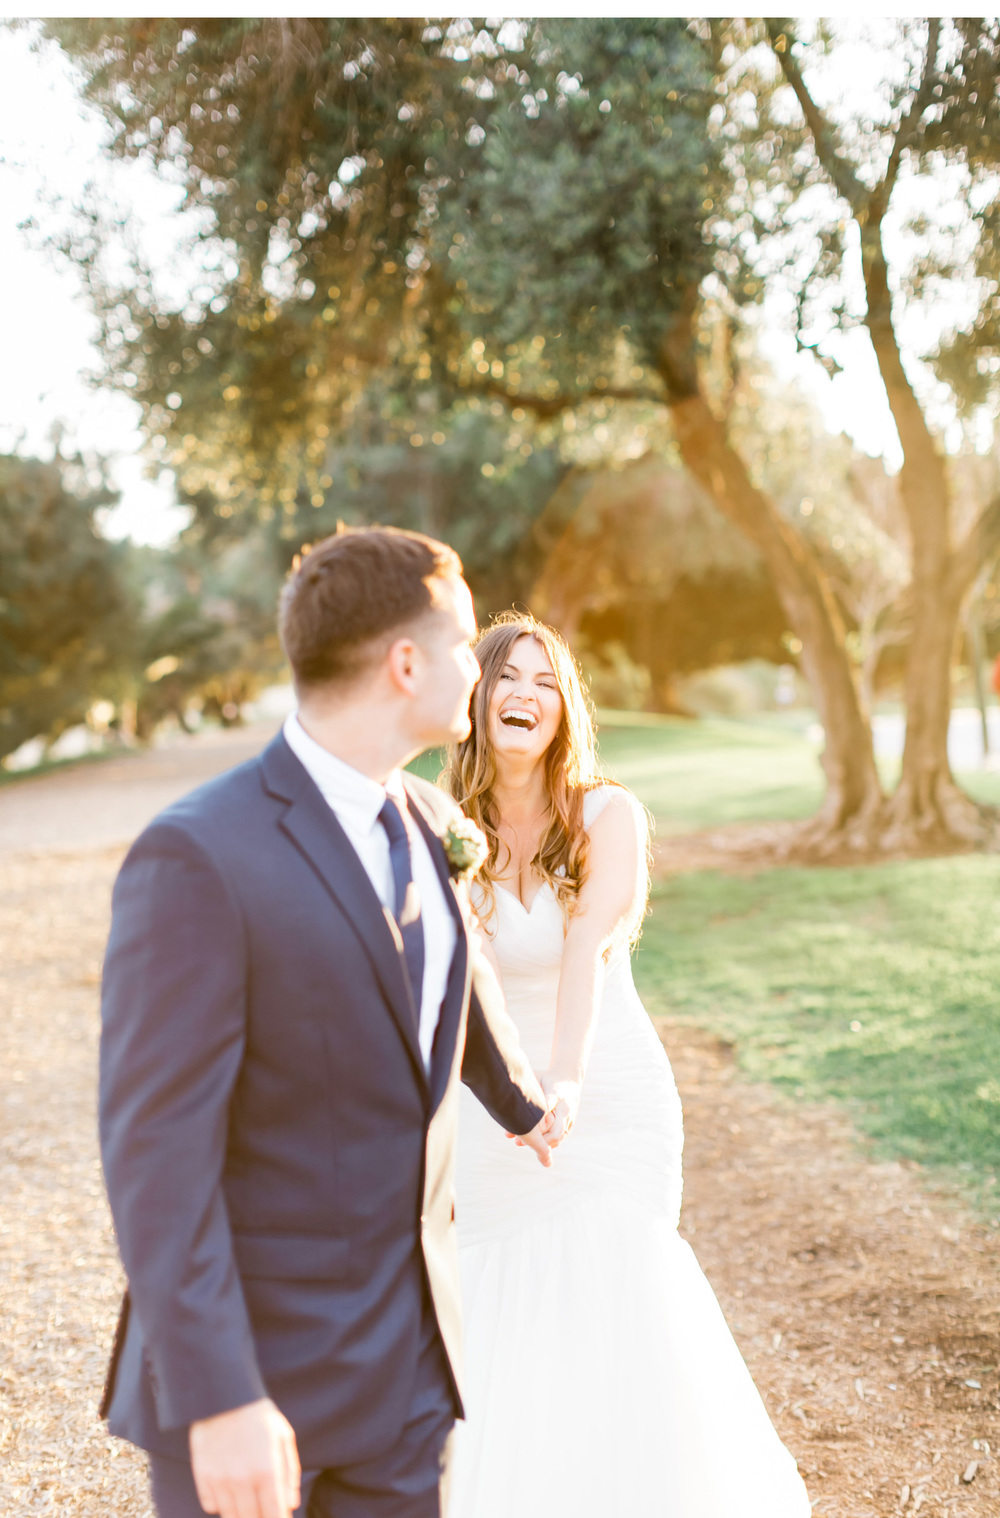 Santa-Barbara-Backyard-Wedding-Natalie-Schutt-Photography_03.jpg